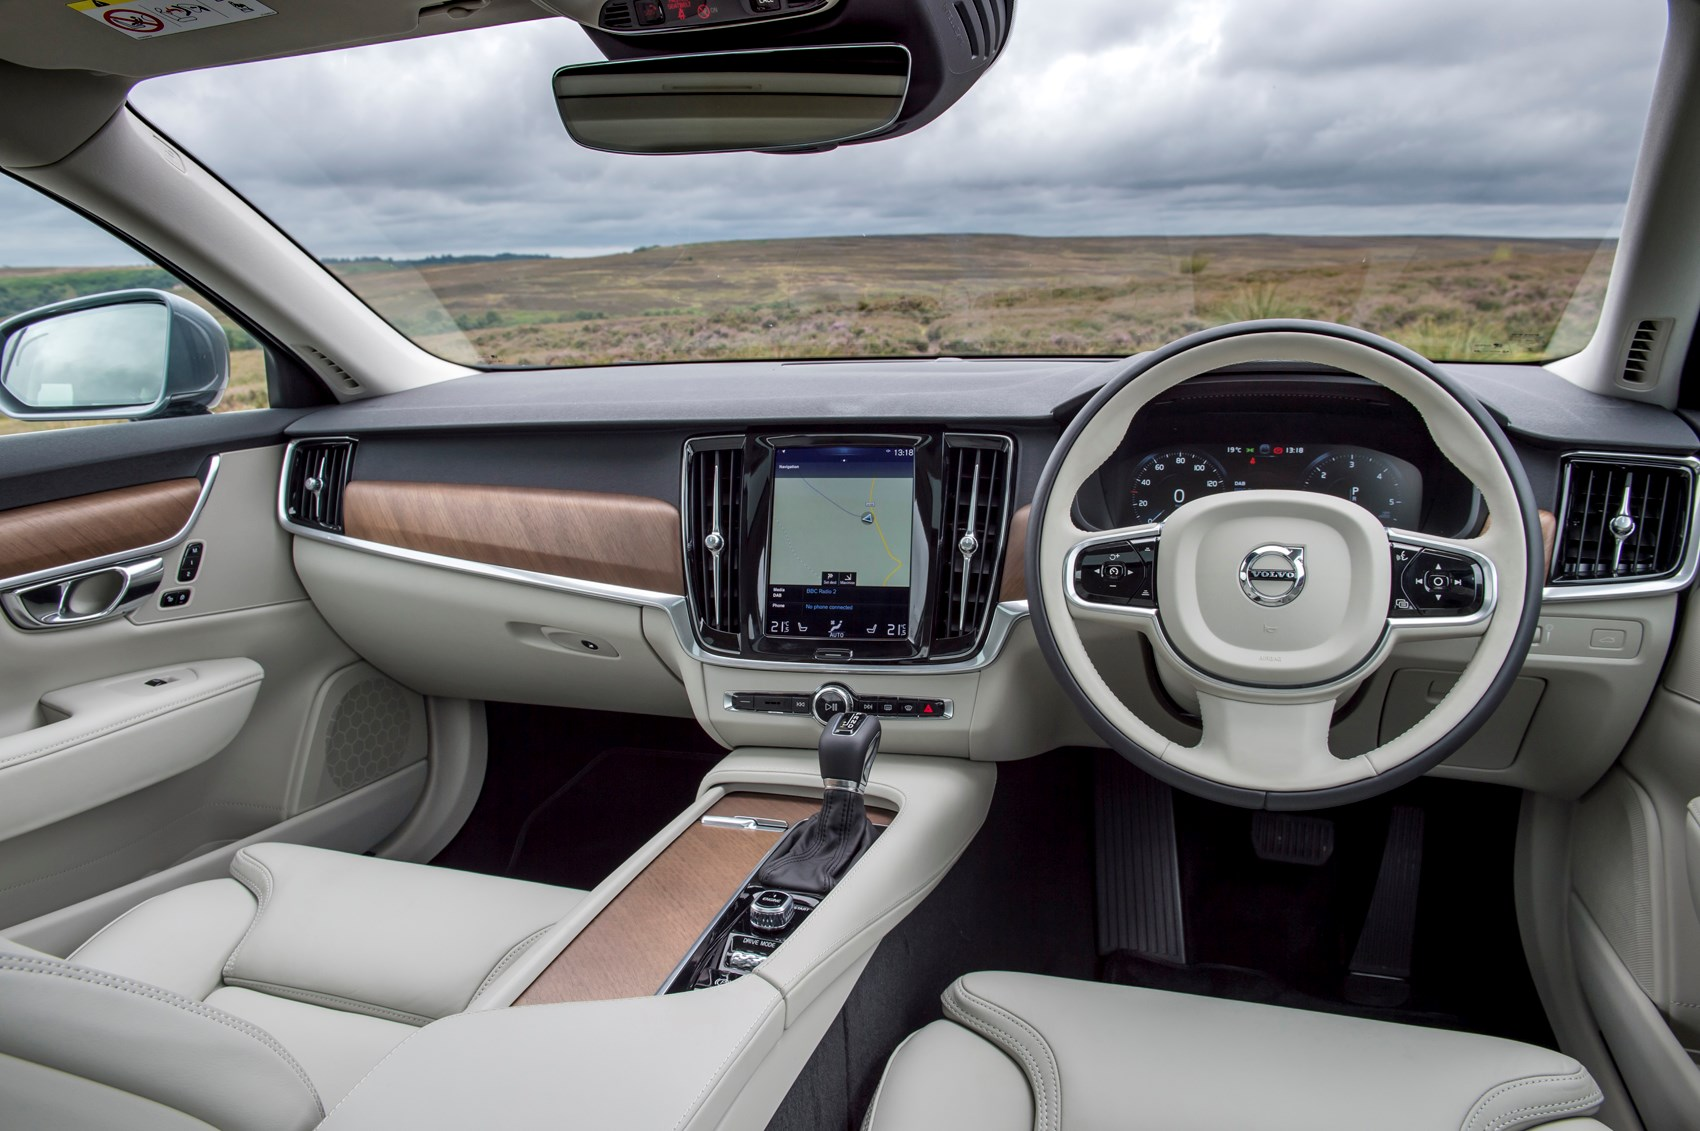 adorable-design-of-the-white-seats-added-with-brown-accent-dash-as-the-volvo-s90-2016-interior-ideas